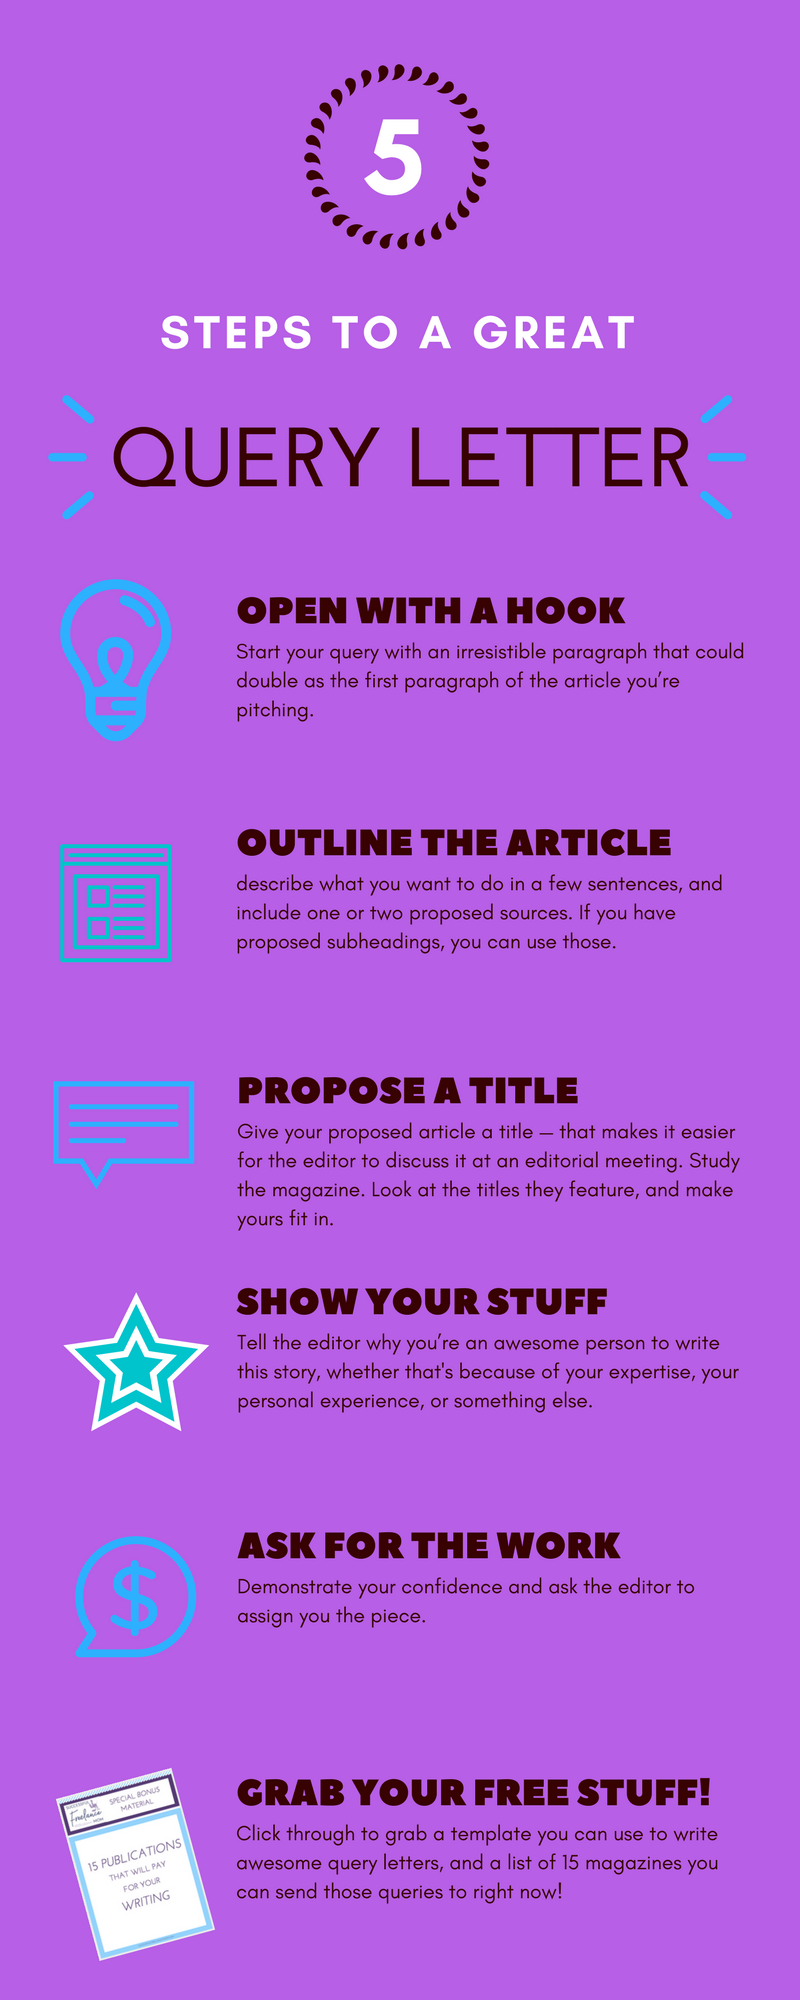 How to write a query letter letter templates writing assignments learn exactly how to write a query letter you can send to magazines and get high spiritdancerdesigns Images